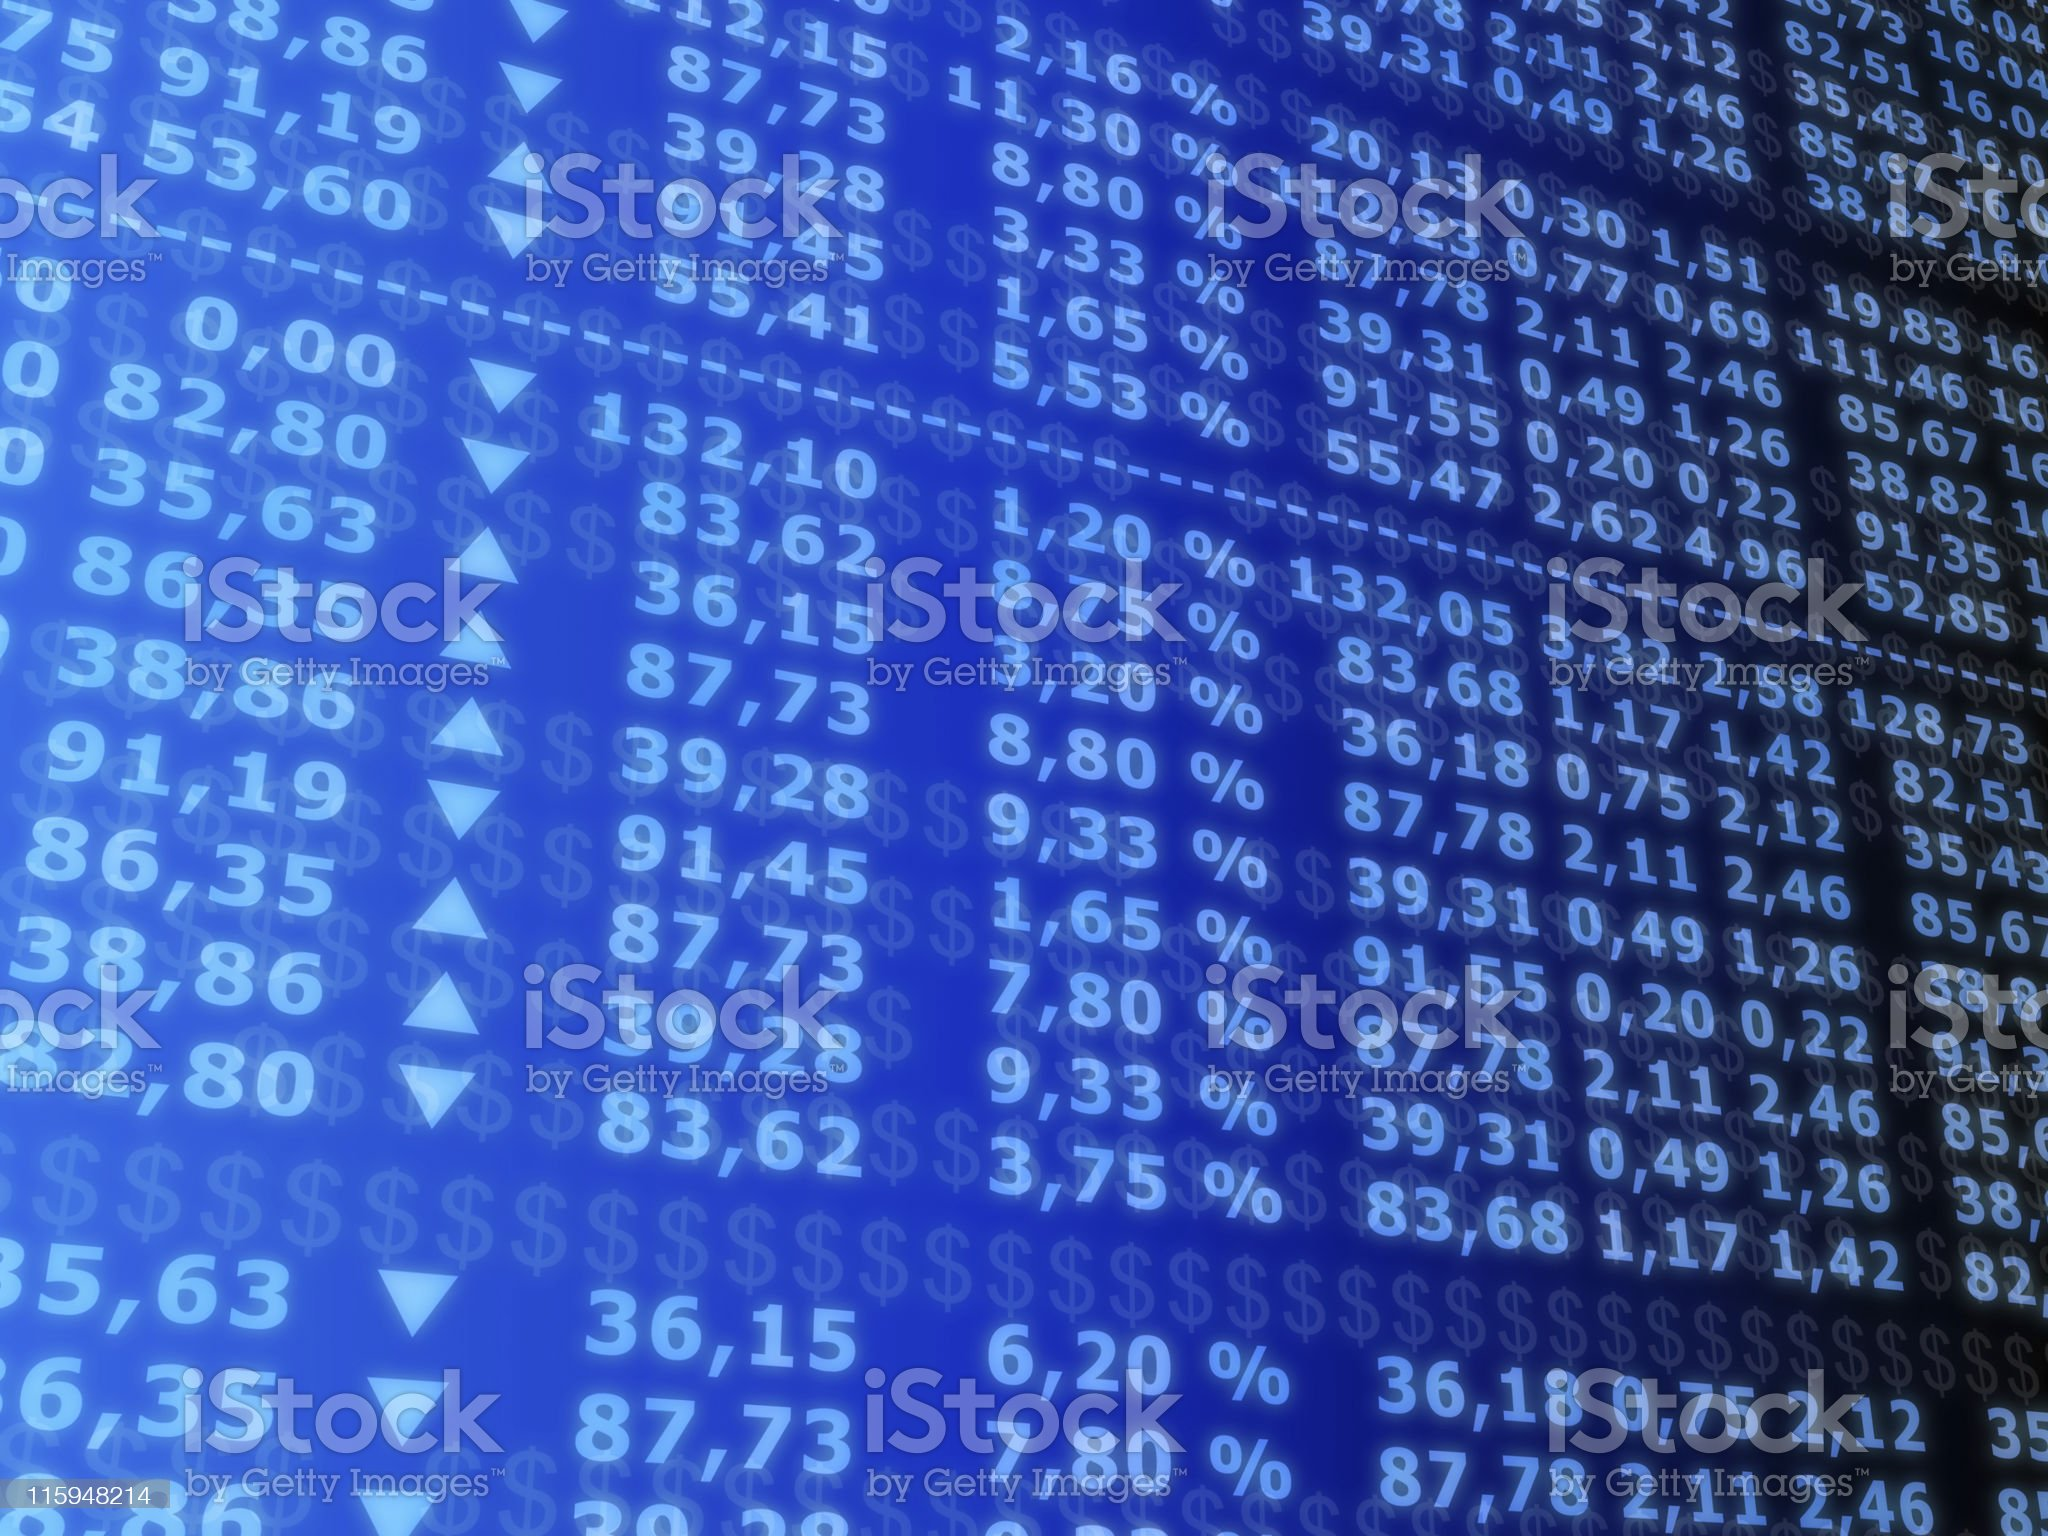 Computer screen with columns of stock exchange prices royalty-free stock photo